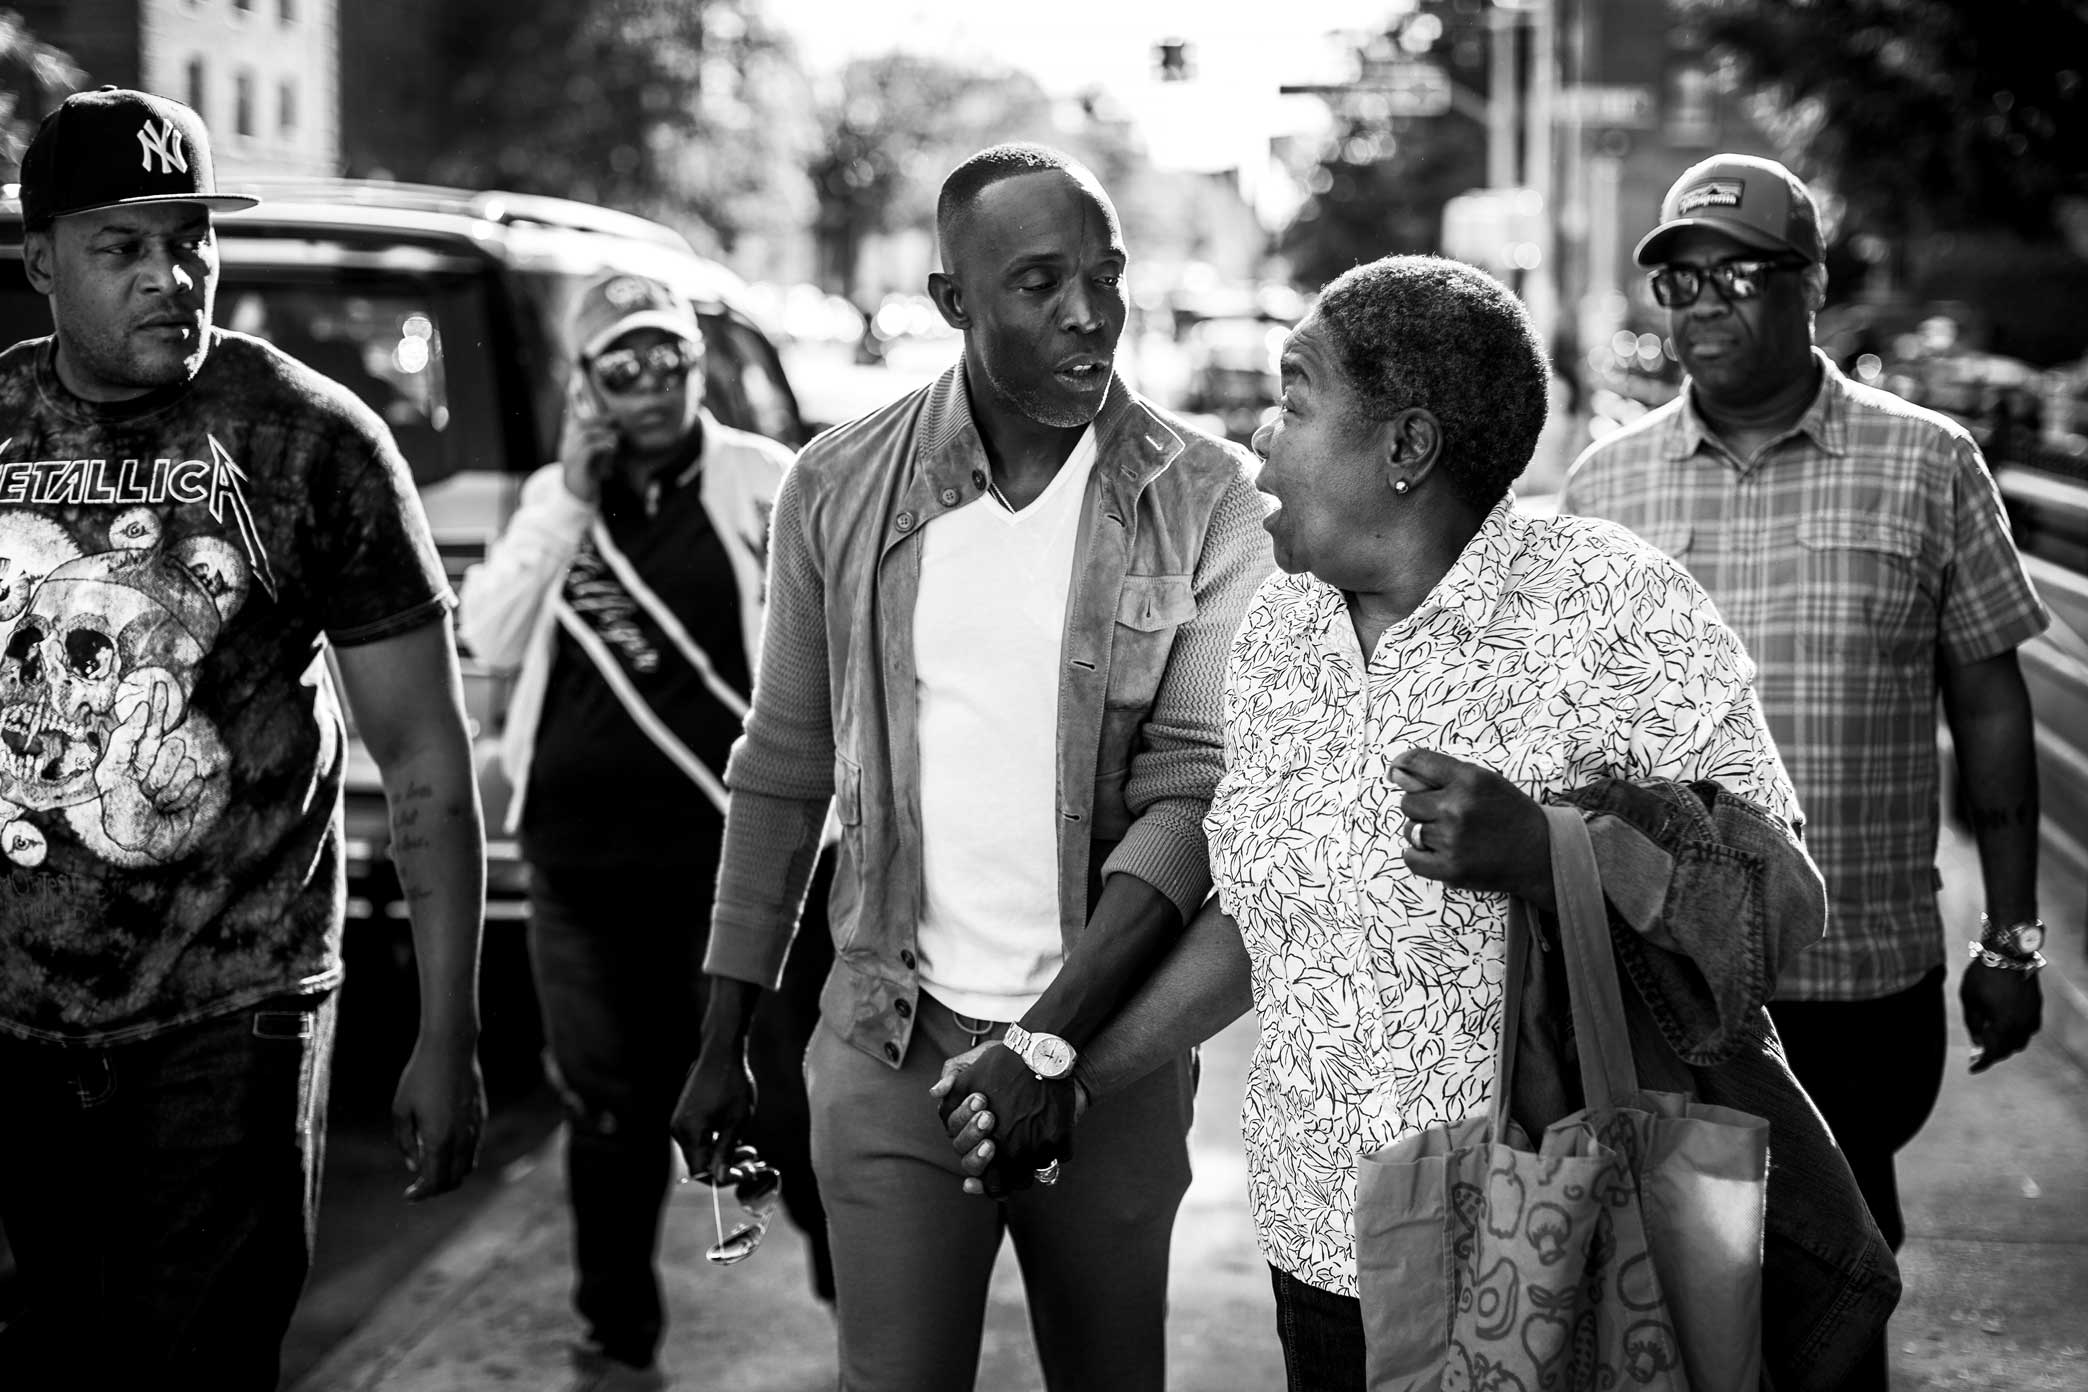 Michael K. Williams with residents of East Flatbush, Brooklyn, where he grew up.